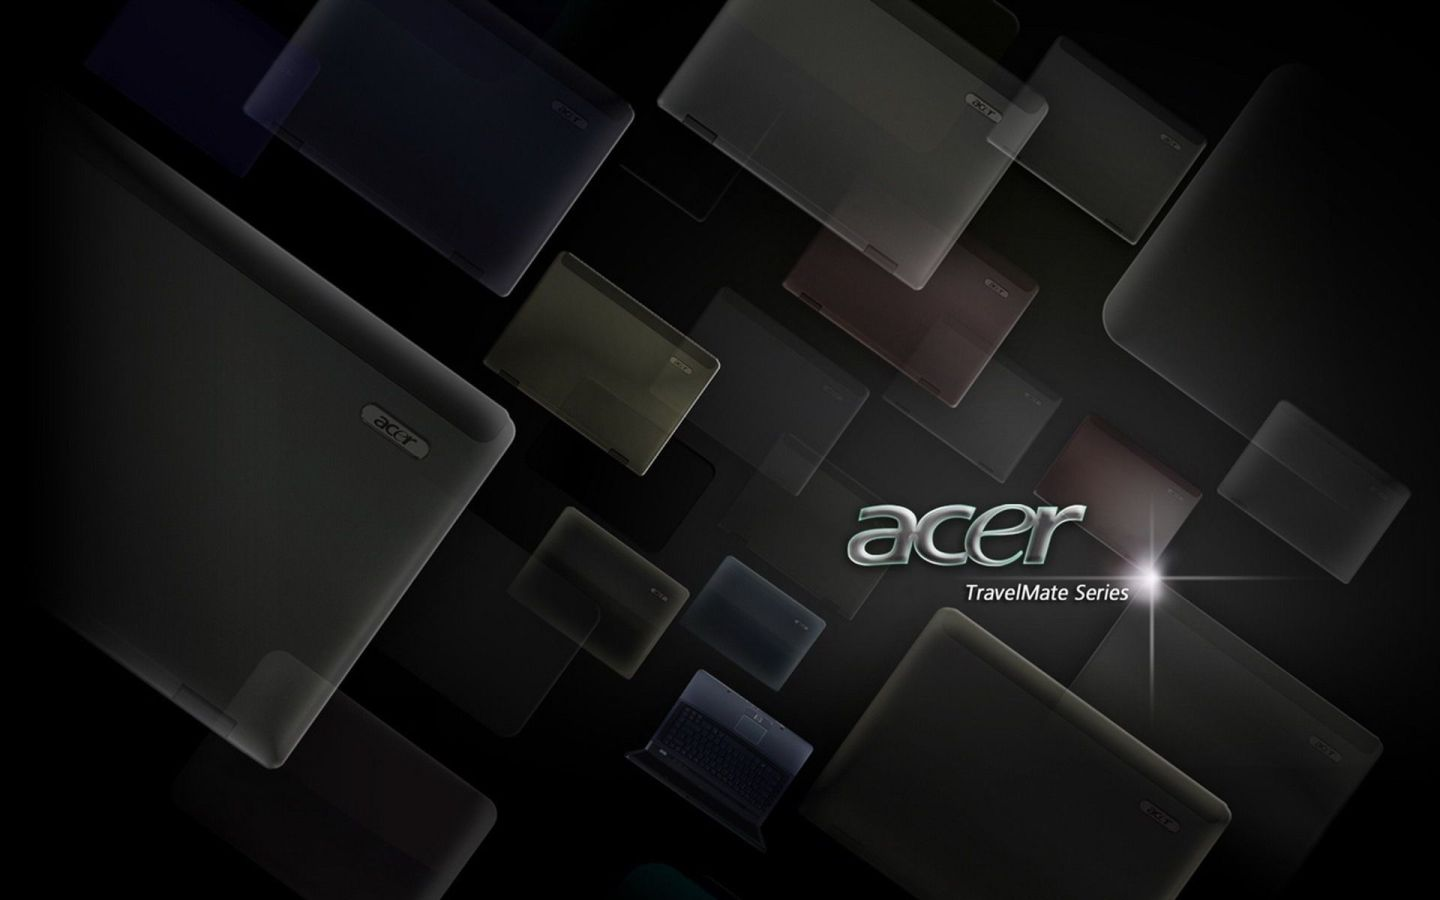 Download All Drivers for Acer's TravelMate B117-M Notebooks